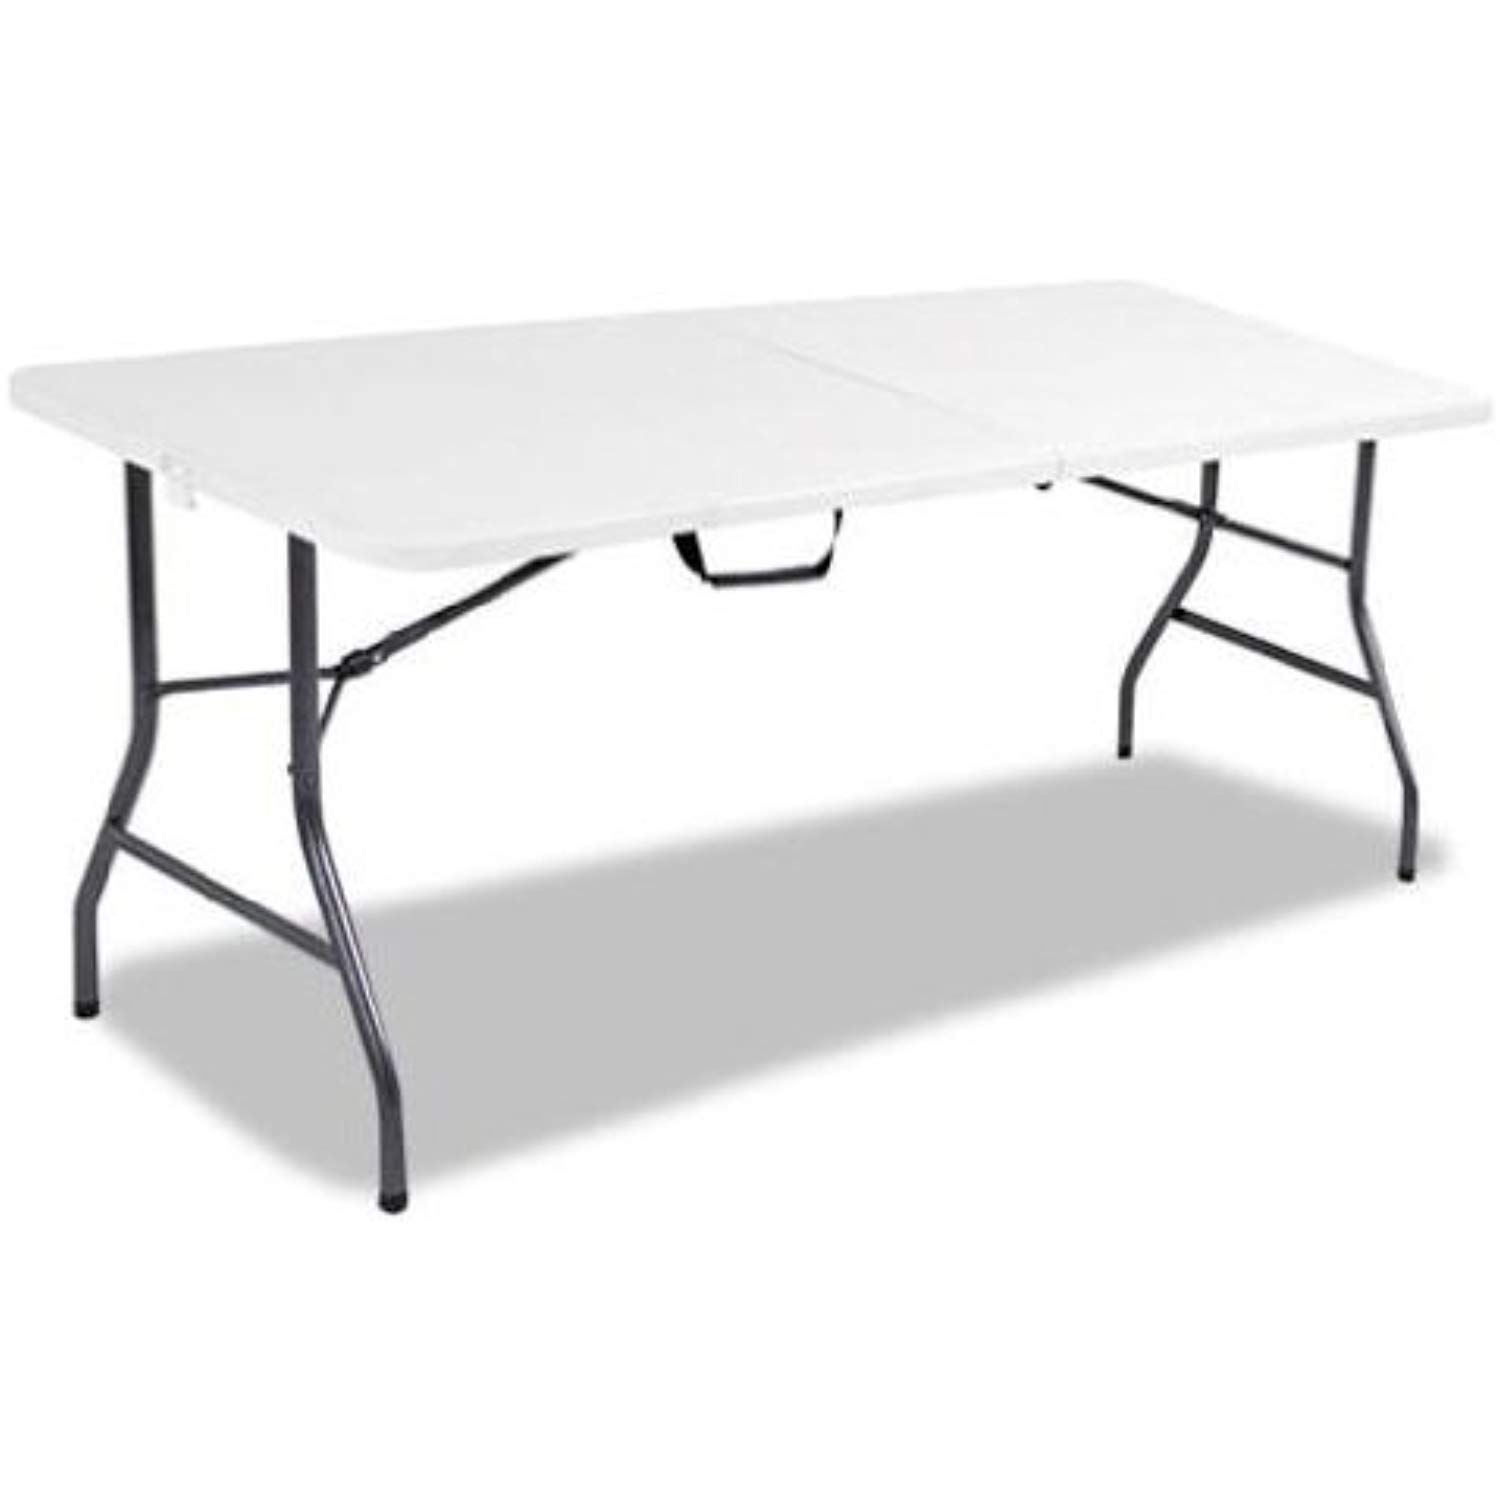 Cosco Products 6 Feet Centerfold Folding Table Color White